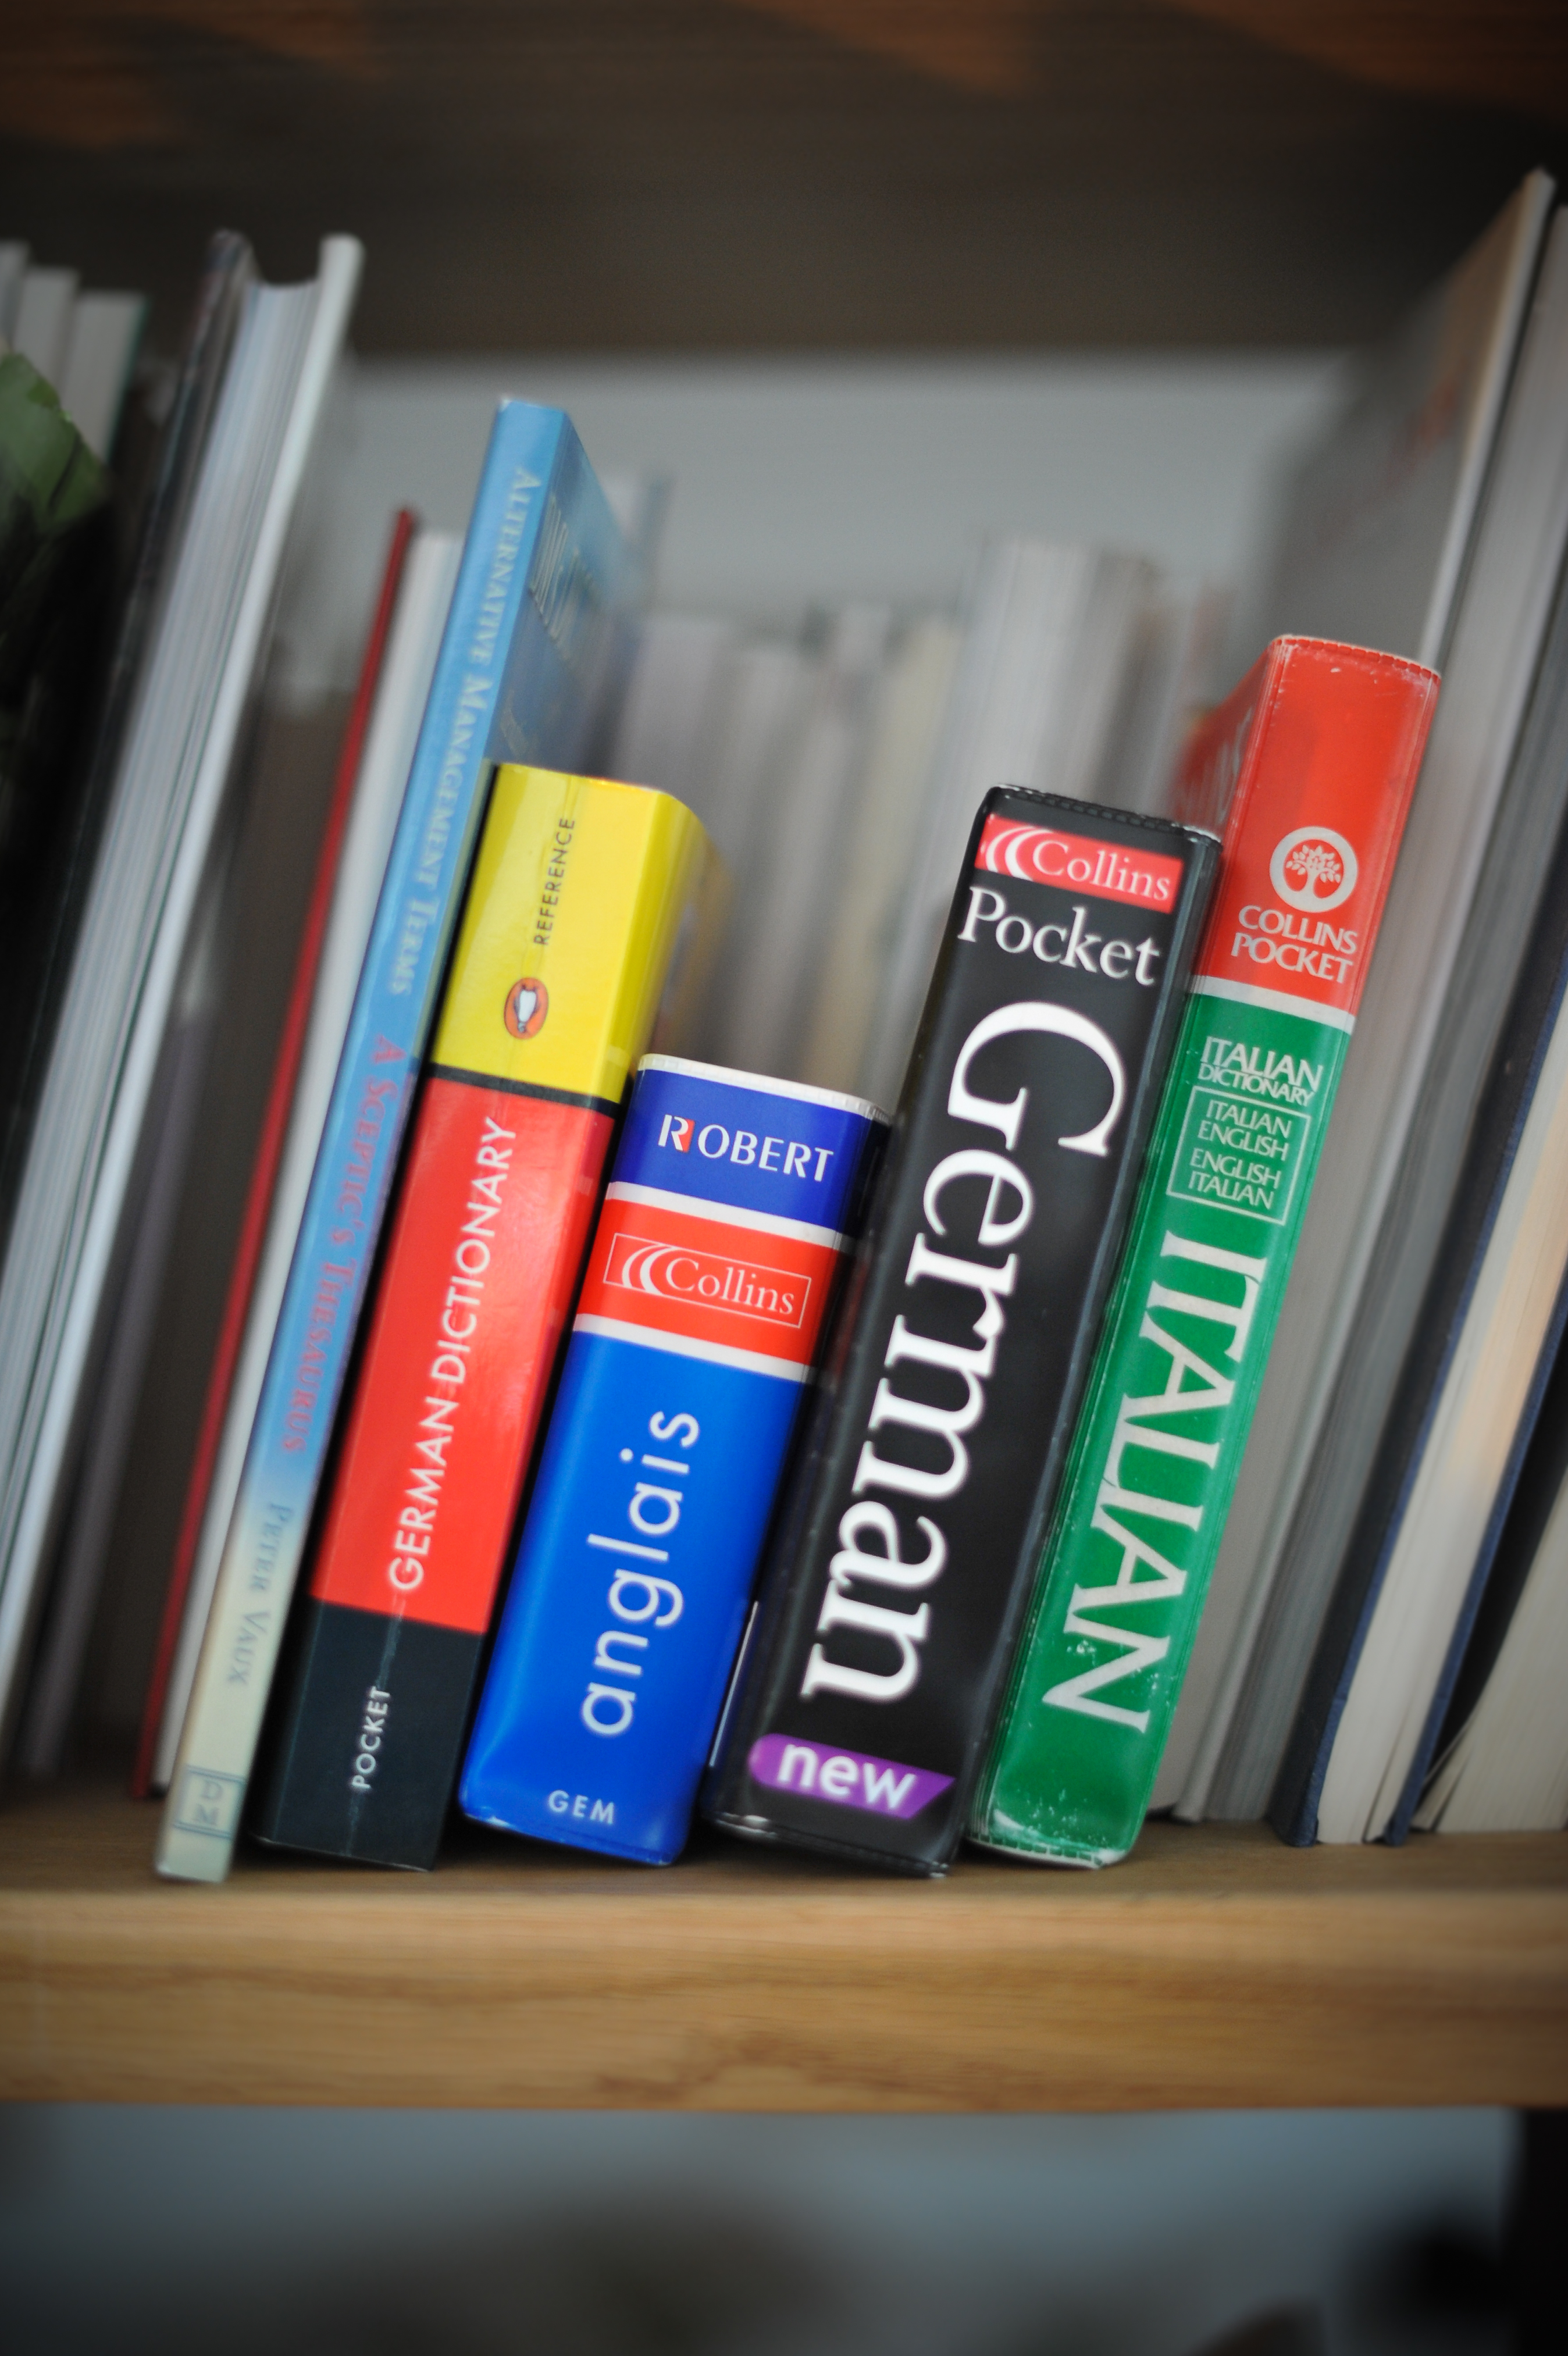 German, French and Italian dictionaries on a shelf. Out of House Publishing have expertise in producing MFL content.